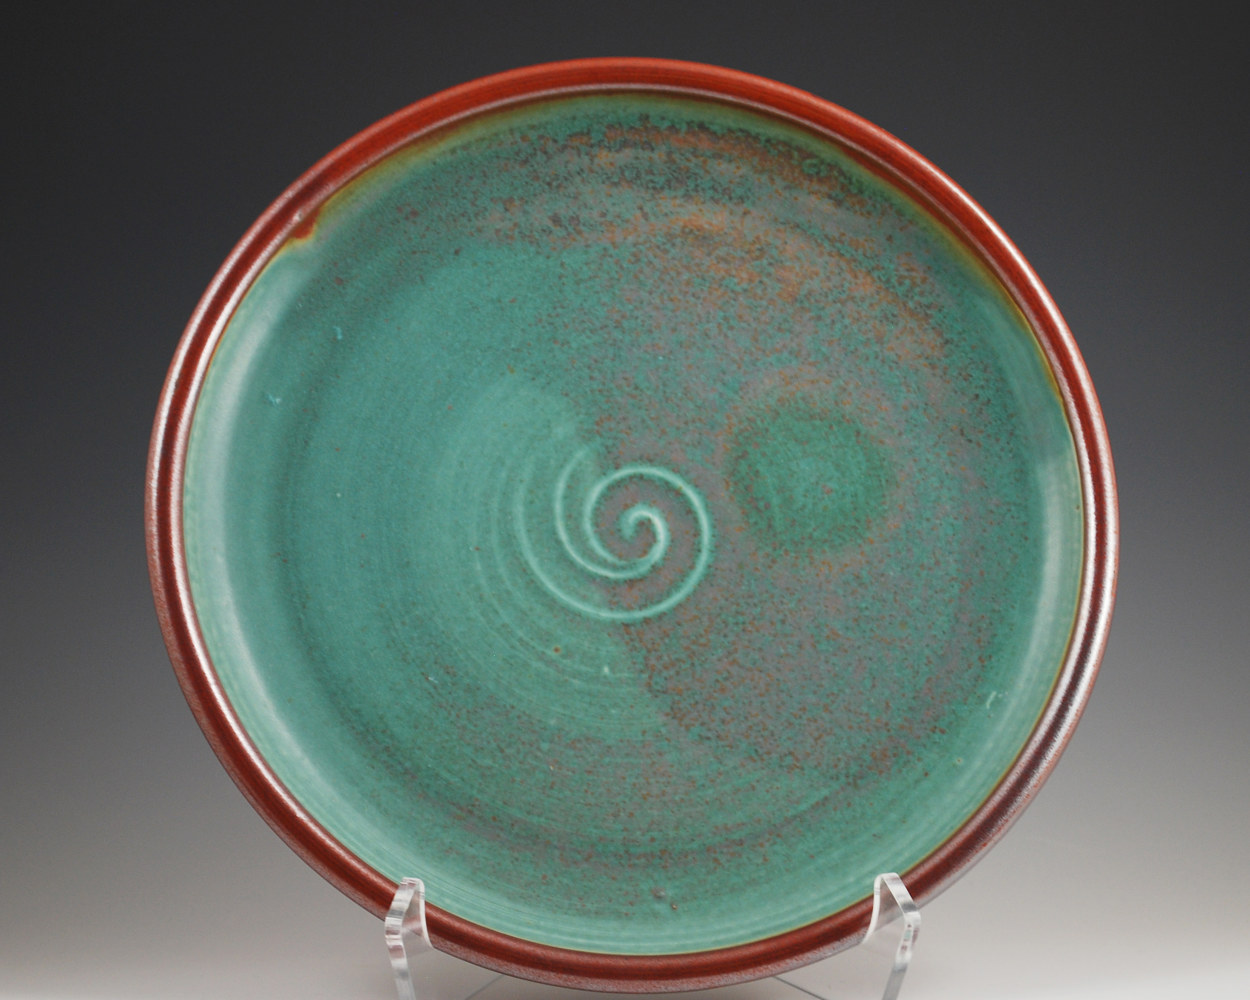 Turquoise Stone Plate with Rust Red Rim by Mark  Goertzen